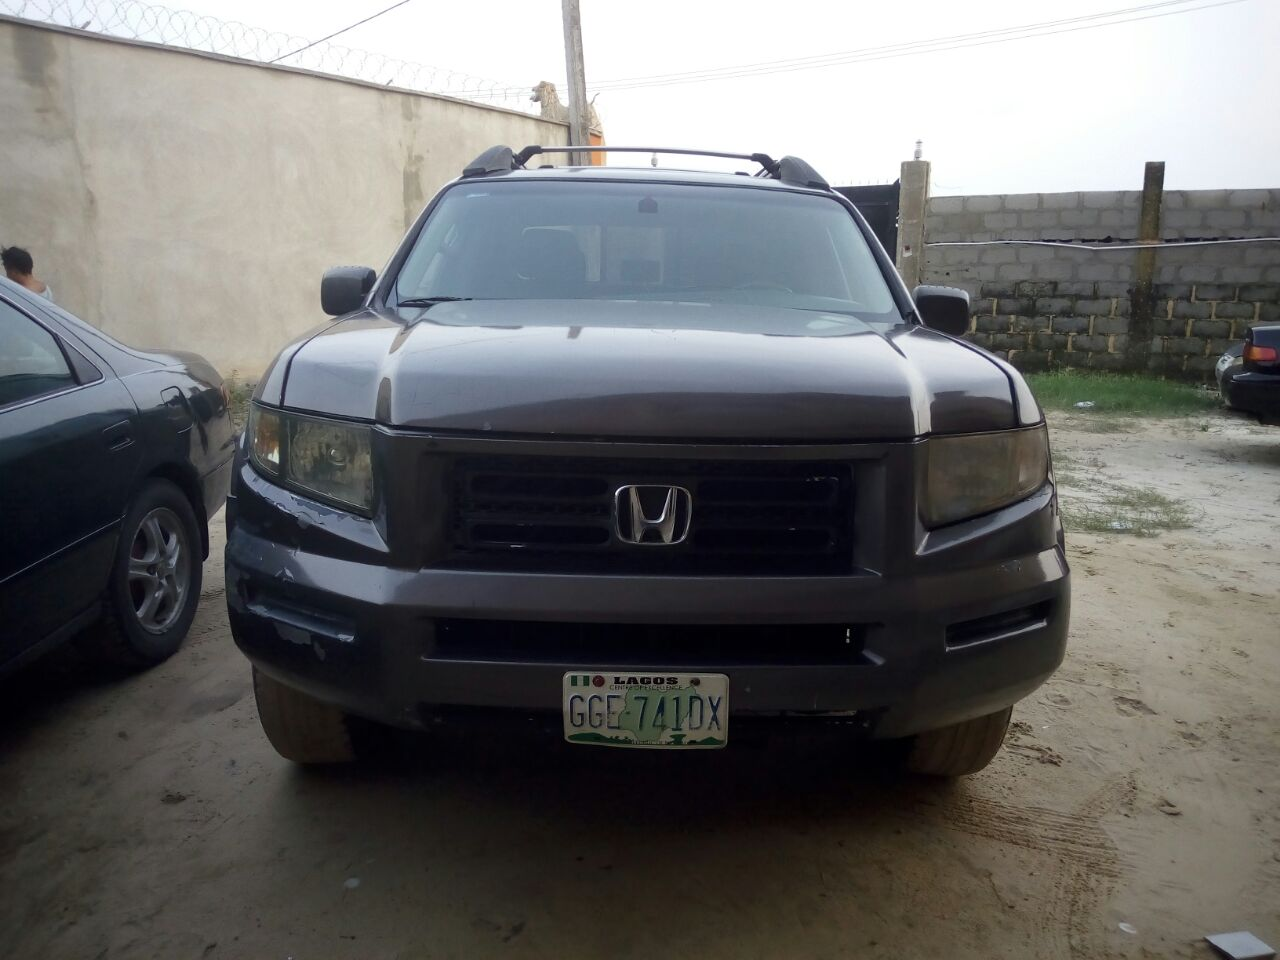 i have a honda ridgeline suv for sale very rugged and powerfull truck autos nigeria. Black Bedroom Furniture Sets. Home Design Ideas